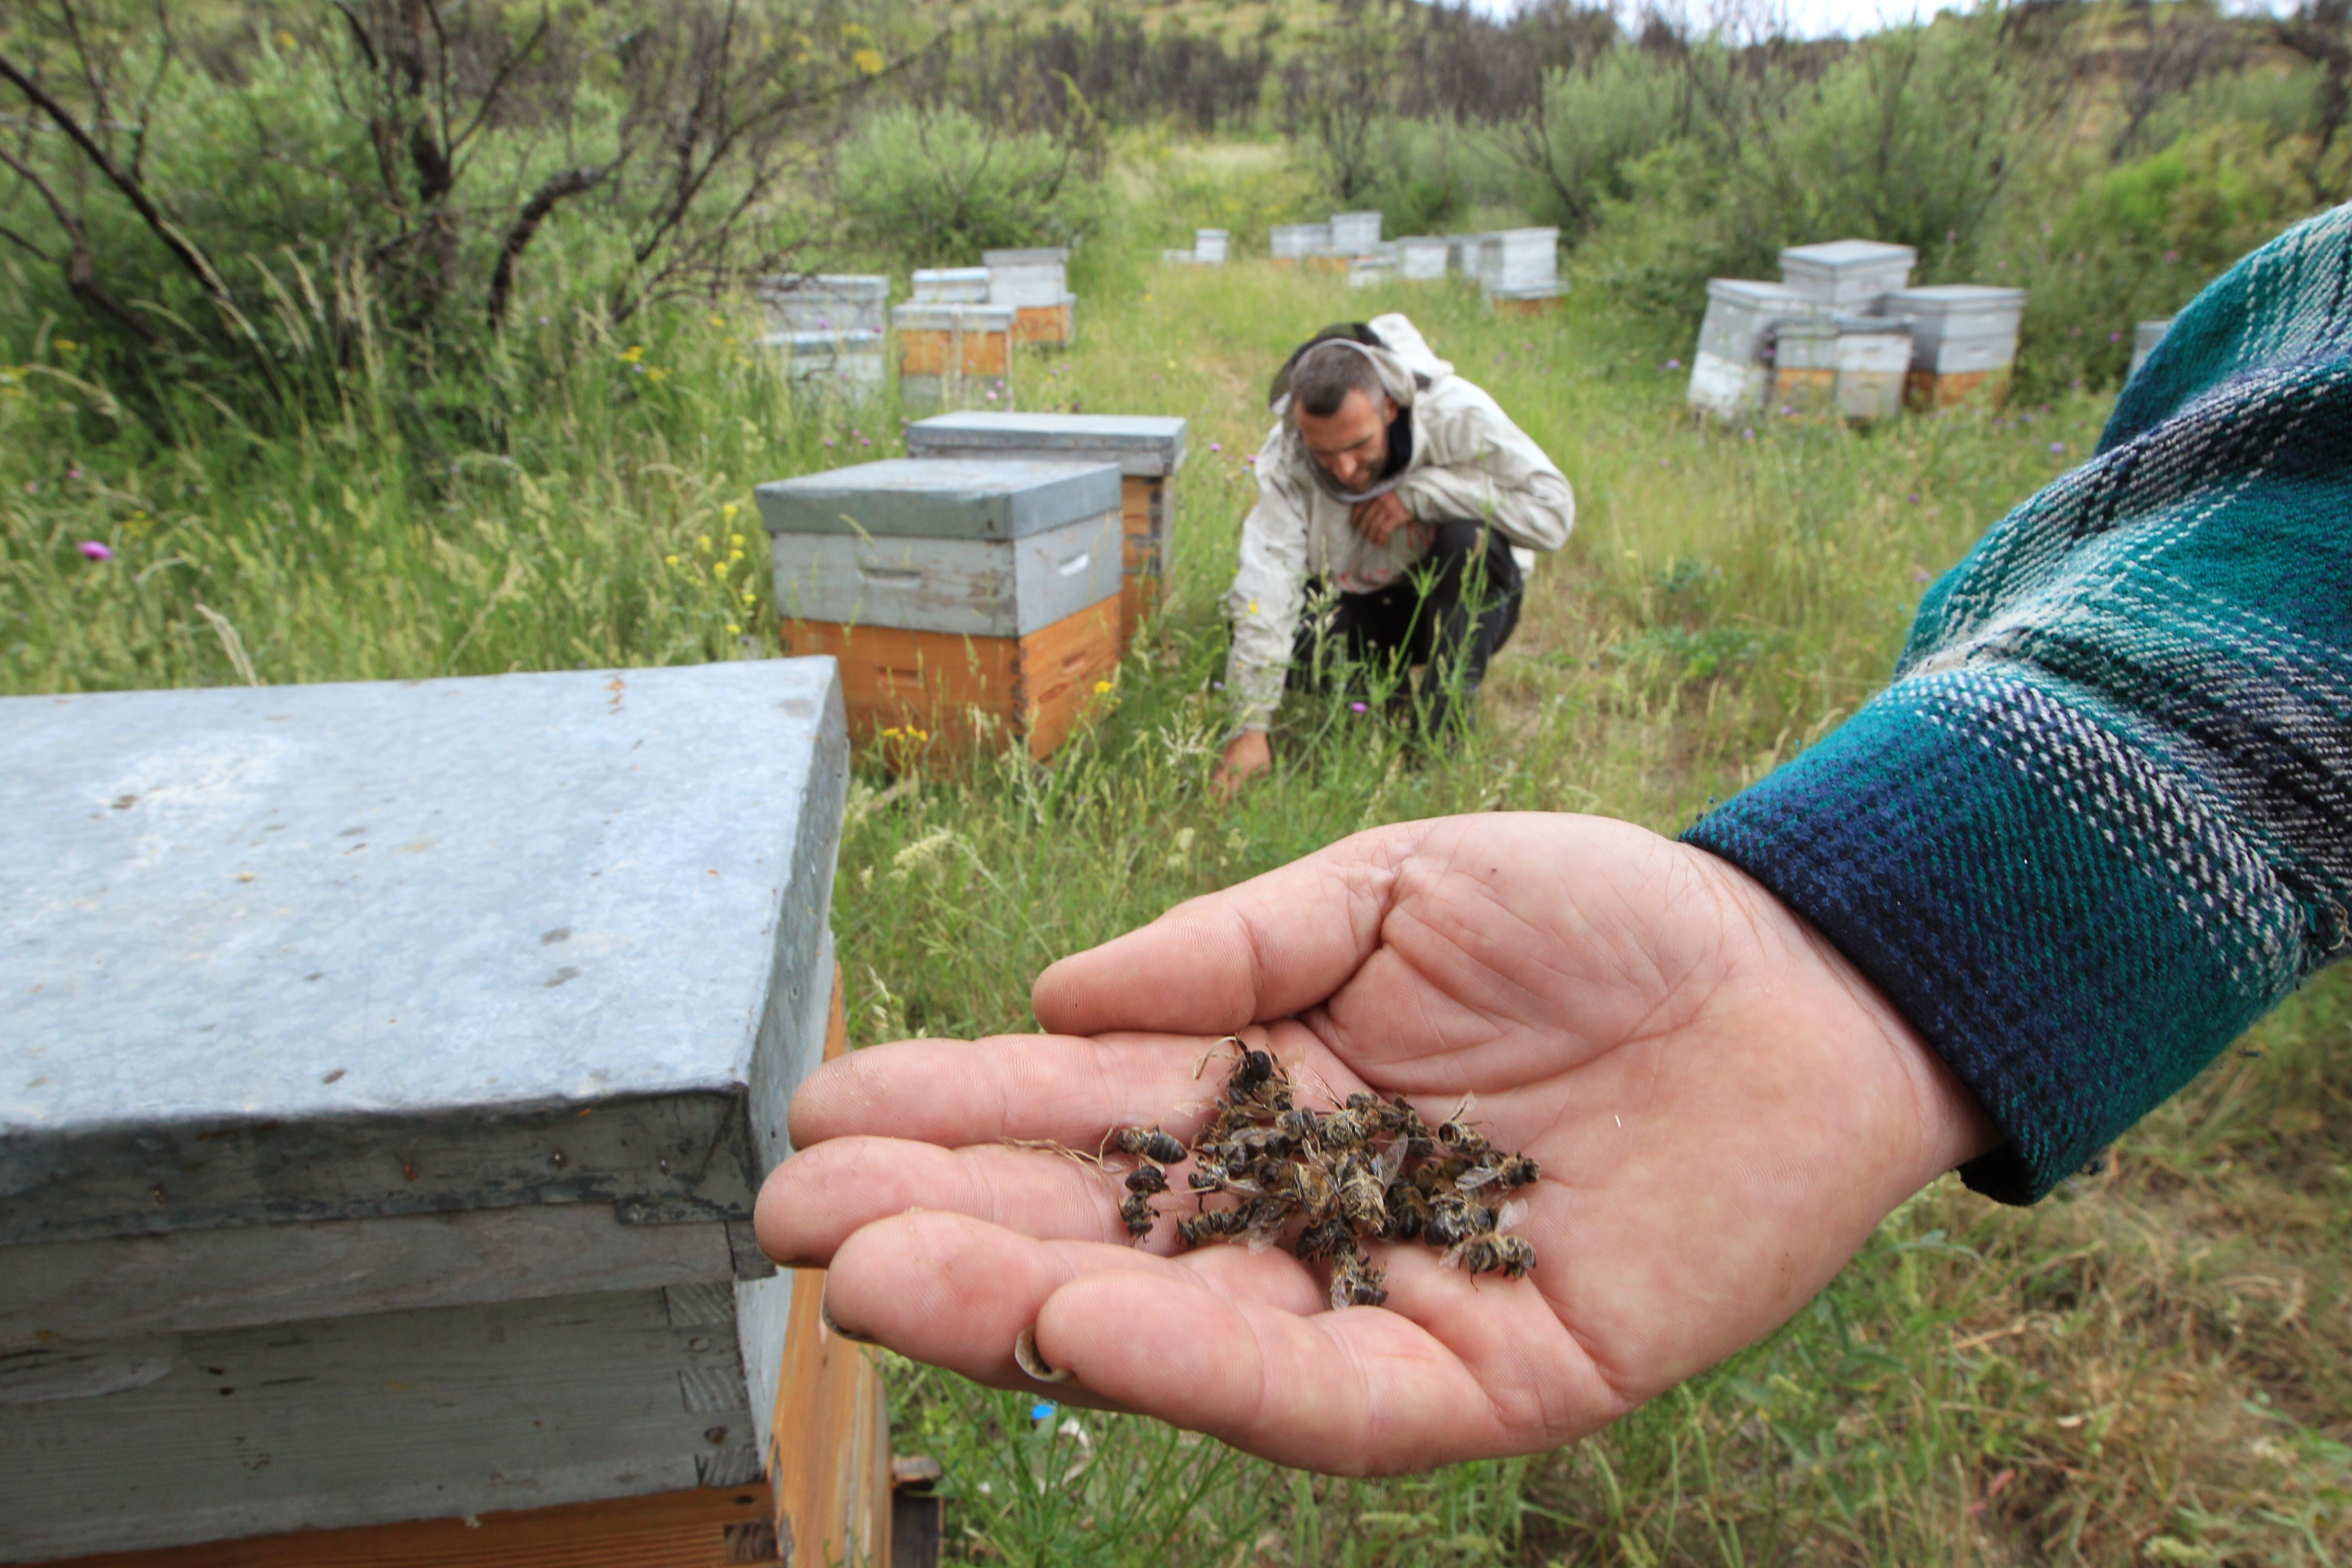 Pesticides Killing Bees: Study Shows What 'Everybody's Suspected'